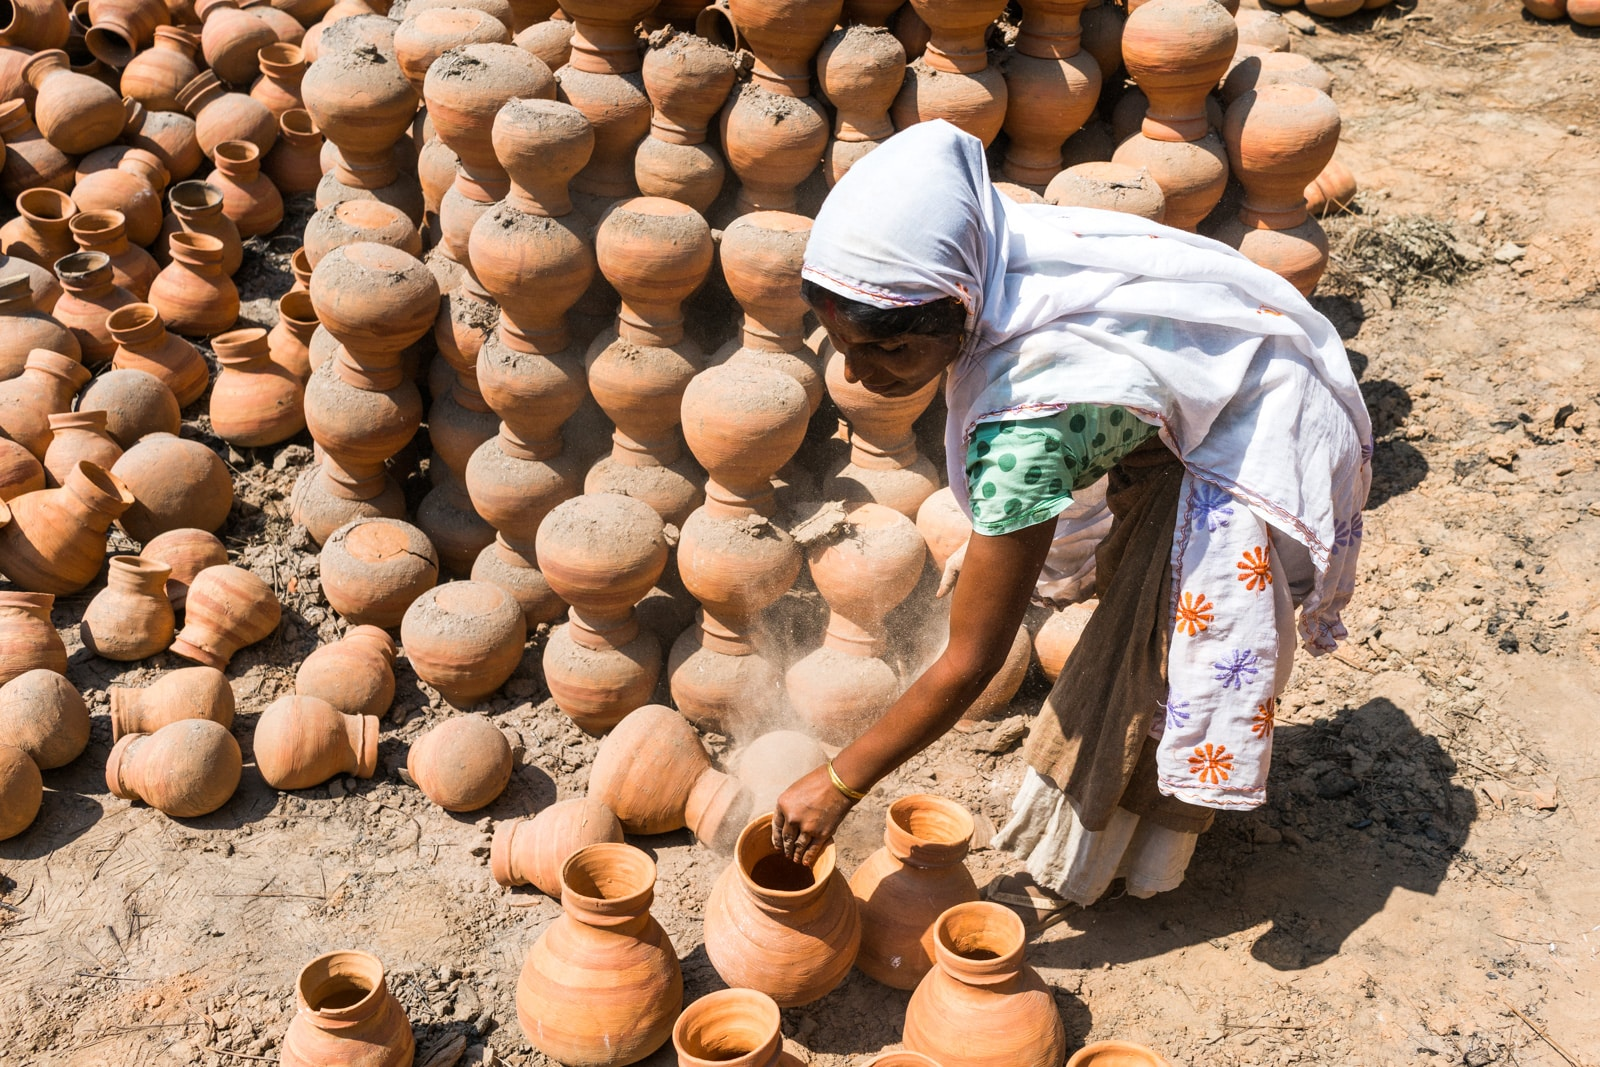 A Kumar woman making clay pots from mud from the banks of Majuli river island in Assam, India - Lost With Purpose travel blog